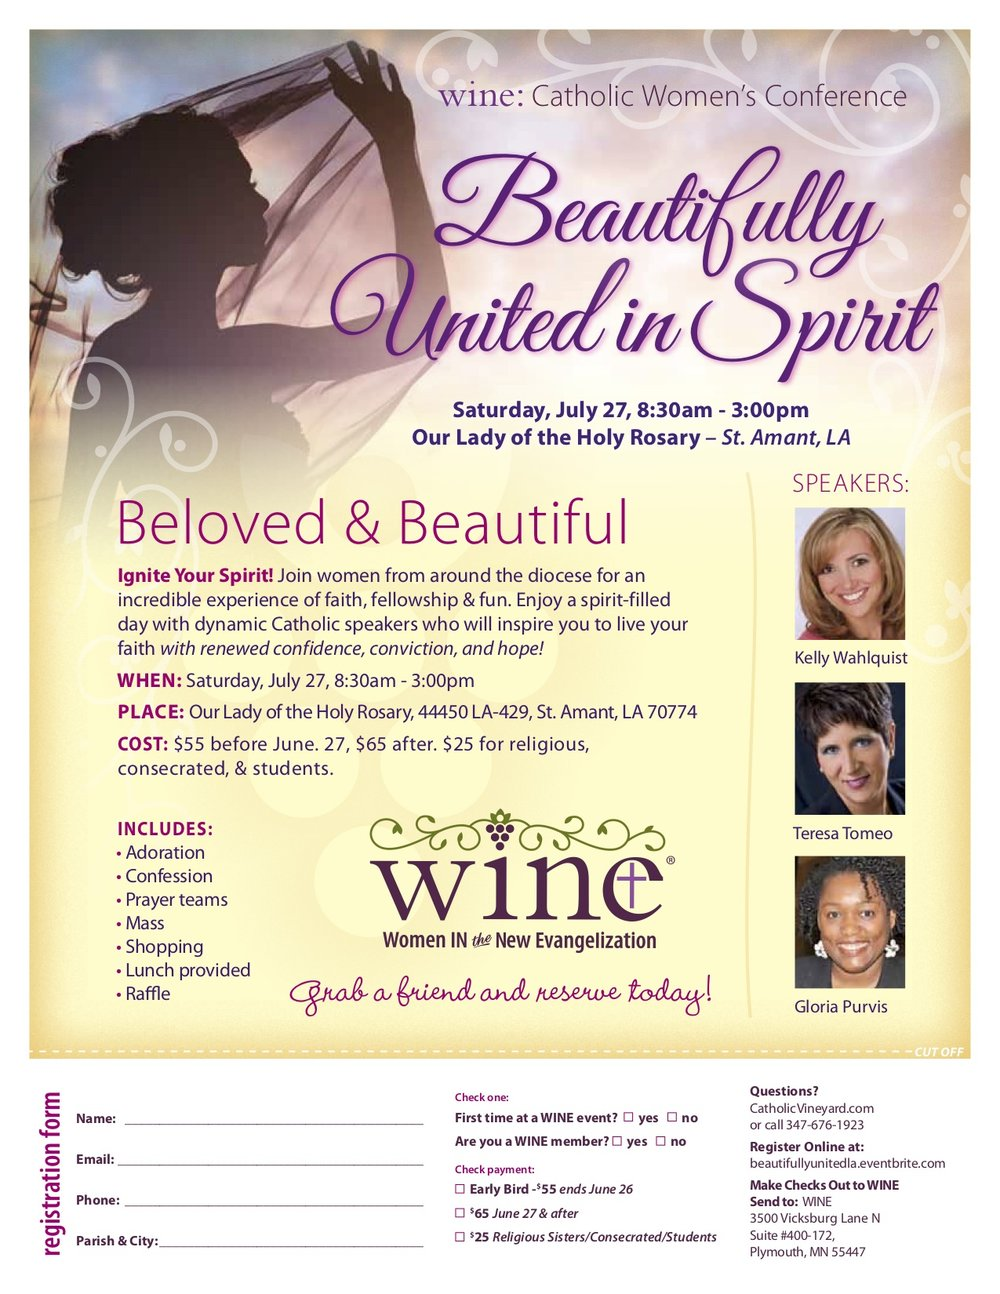 wine_19 July Beautifully_Flyer 1.jpg